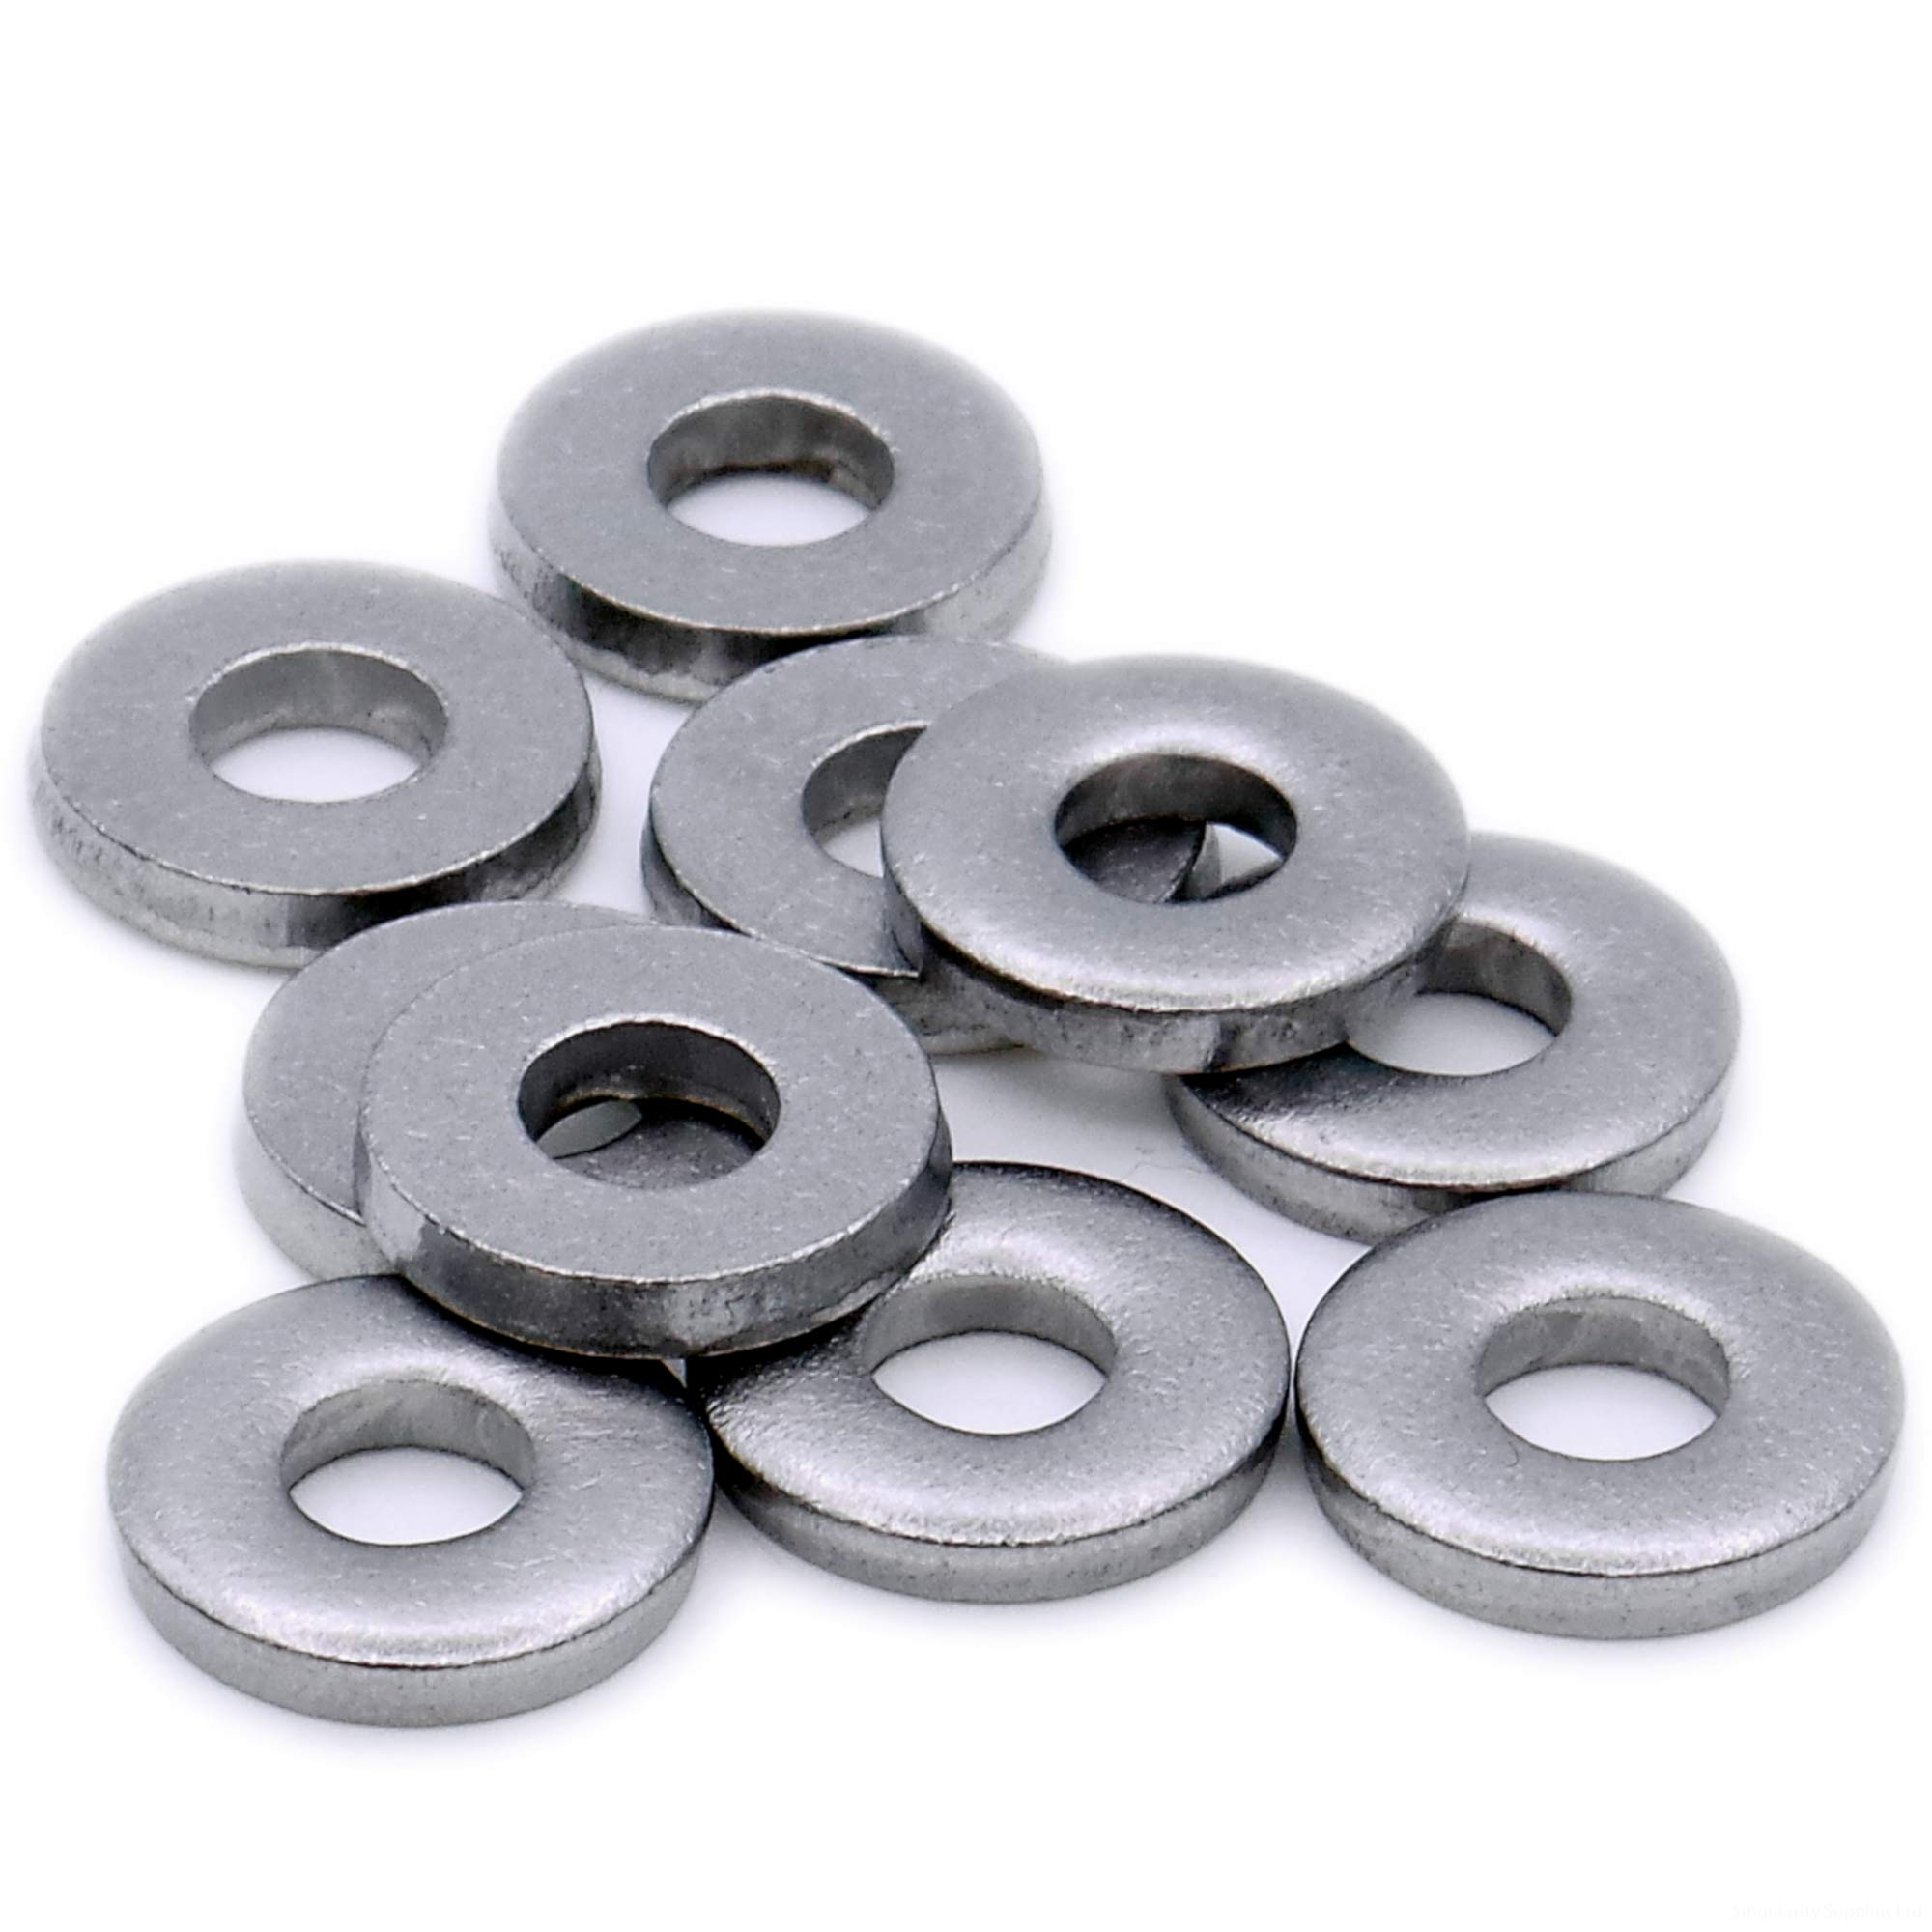 Ideal as Sewing Pattern Weights as seen on GB Sewing Bee BZP Heavy Duty Washers